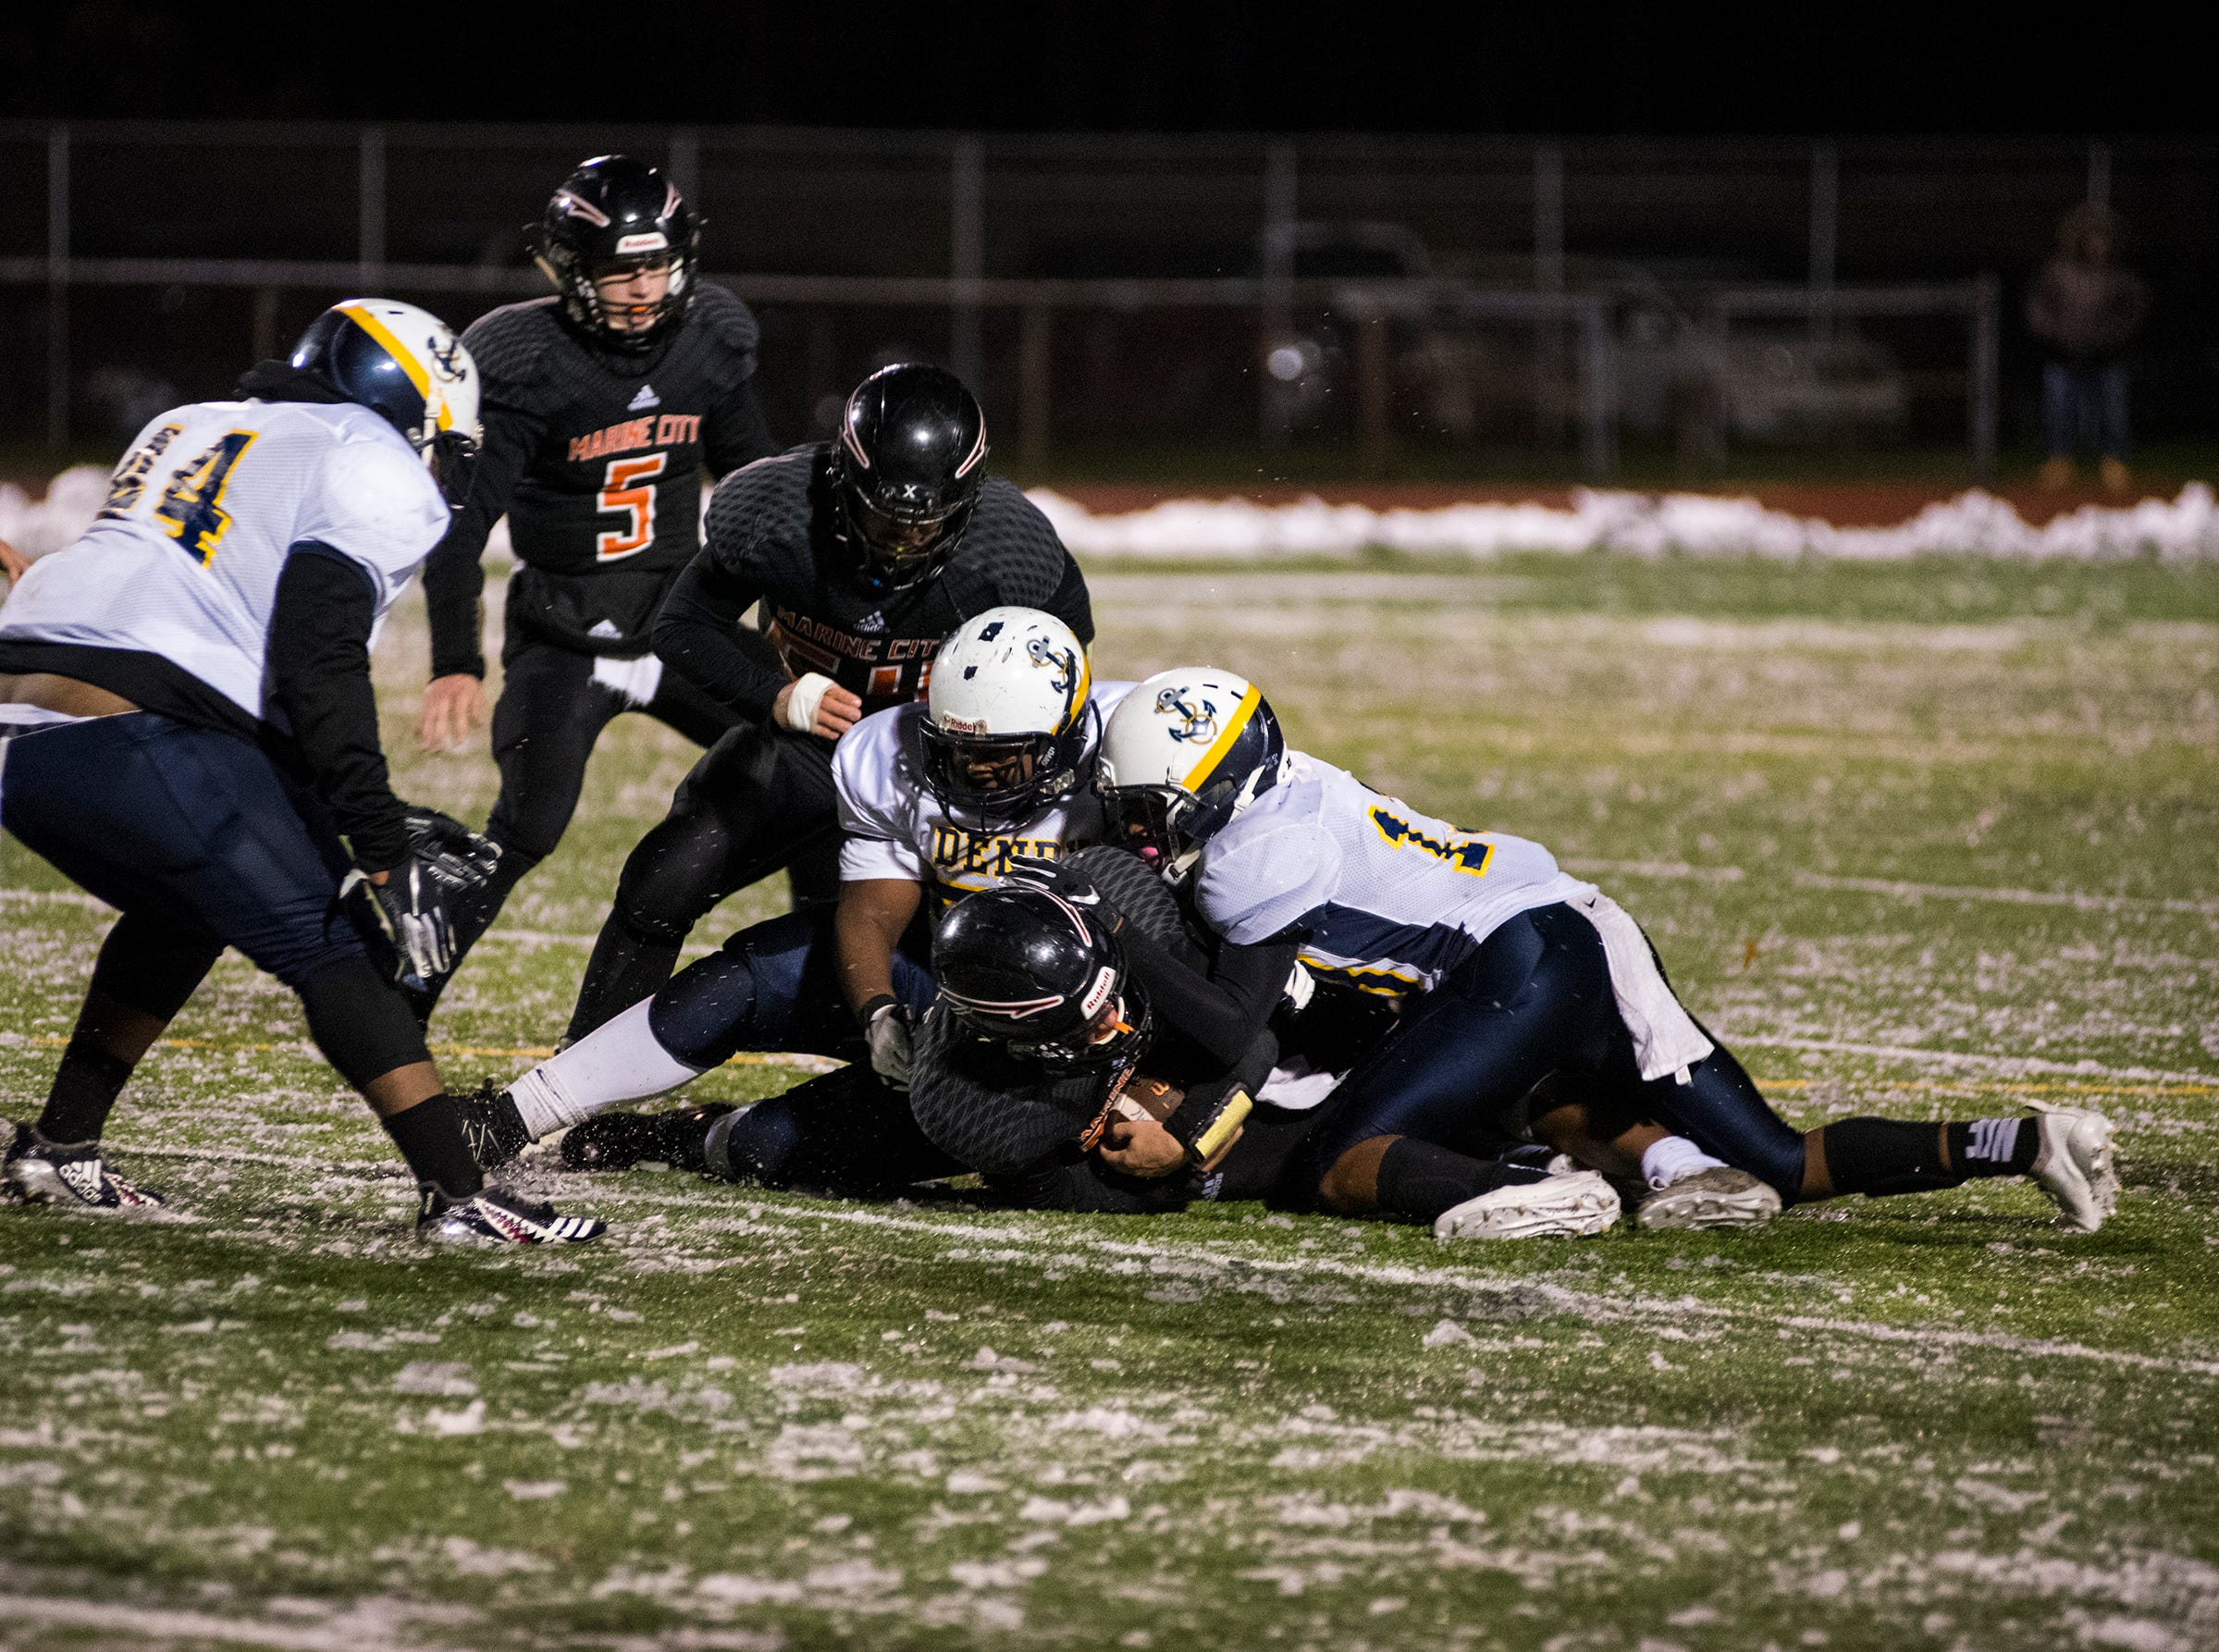 Marine City High School running back Aren Sopfe holds onto the football as two players from Detroit Denby Tech tackle him during the MHSAA Division 5 regional championship game Friday, Nov. 9, 2018 at East China Stadium.